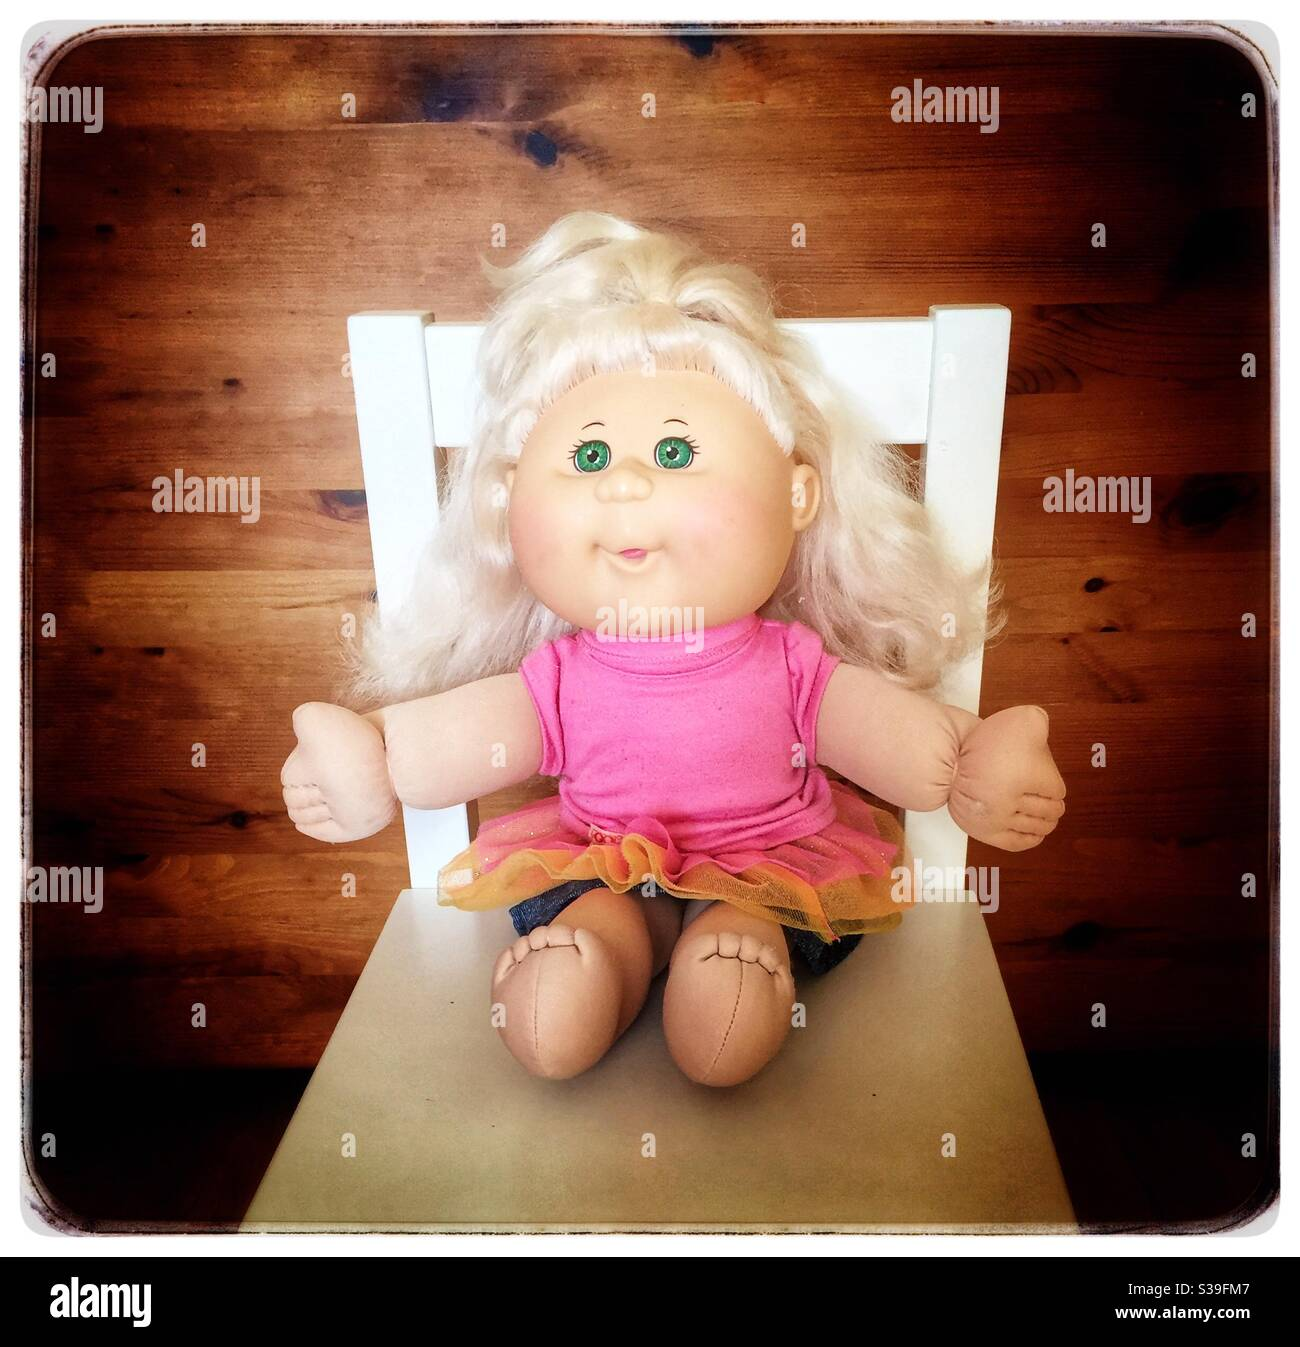 Cabbage Doll High Resolution Stock Photography and Images - Alamy